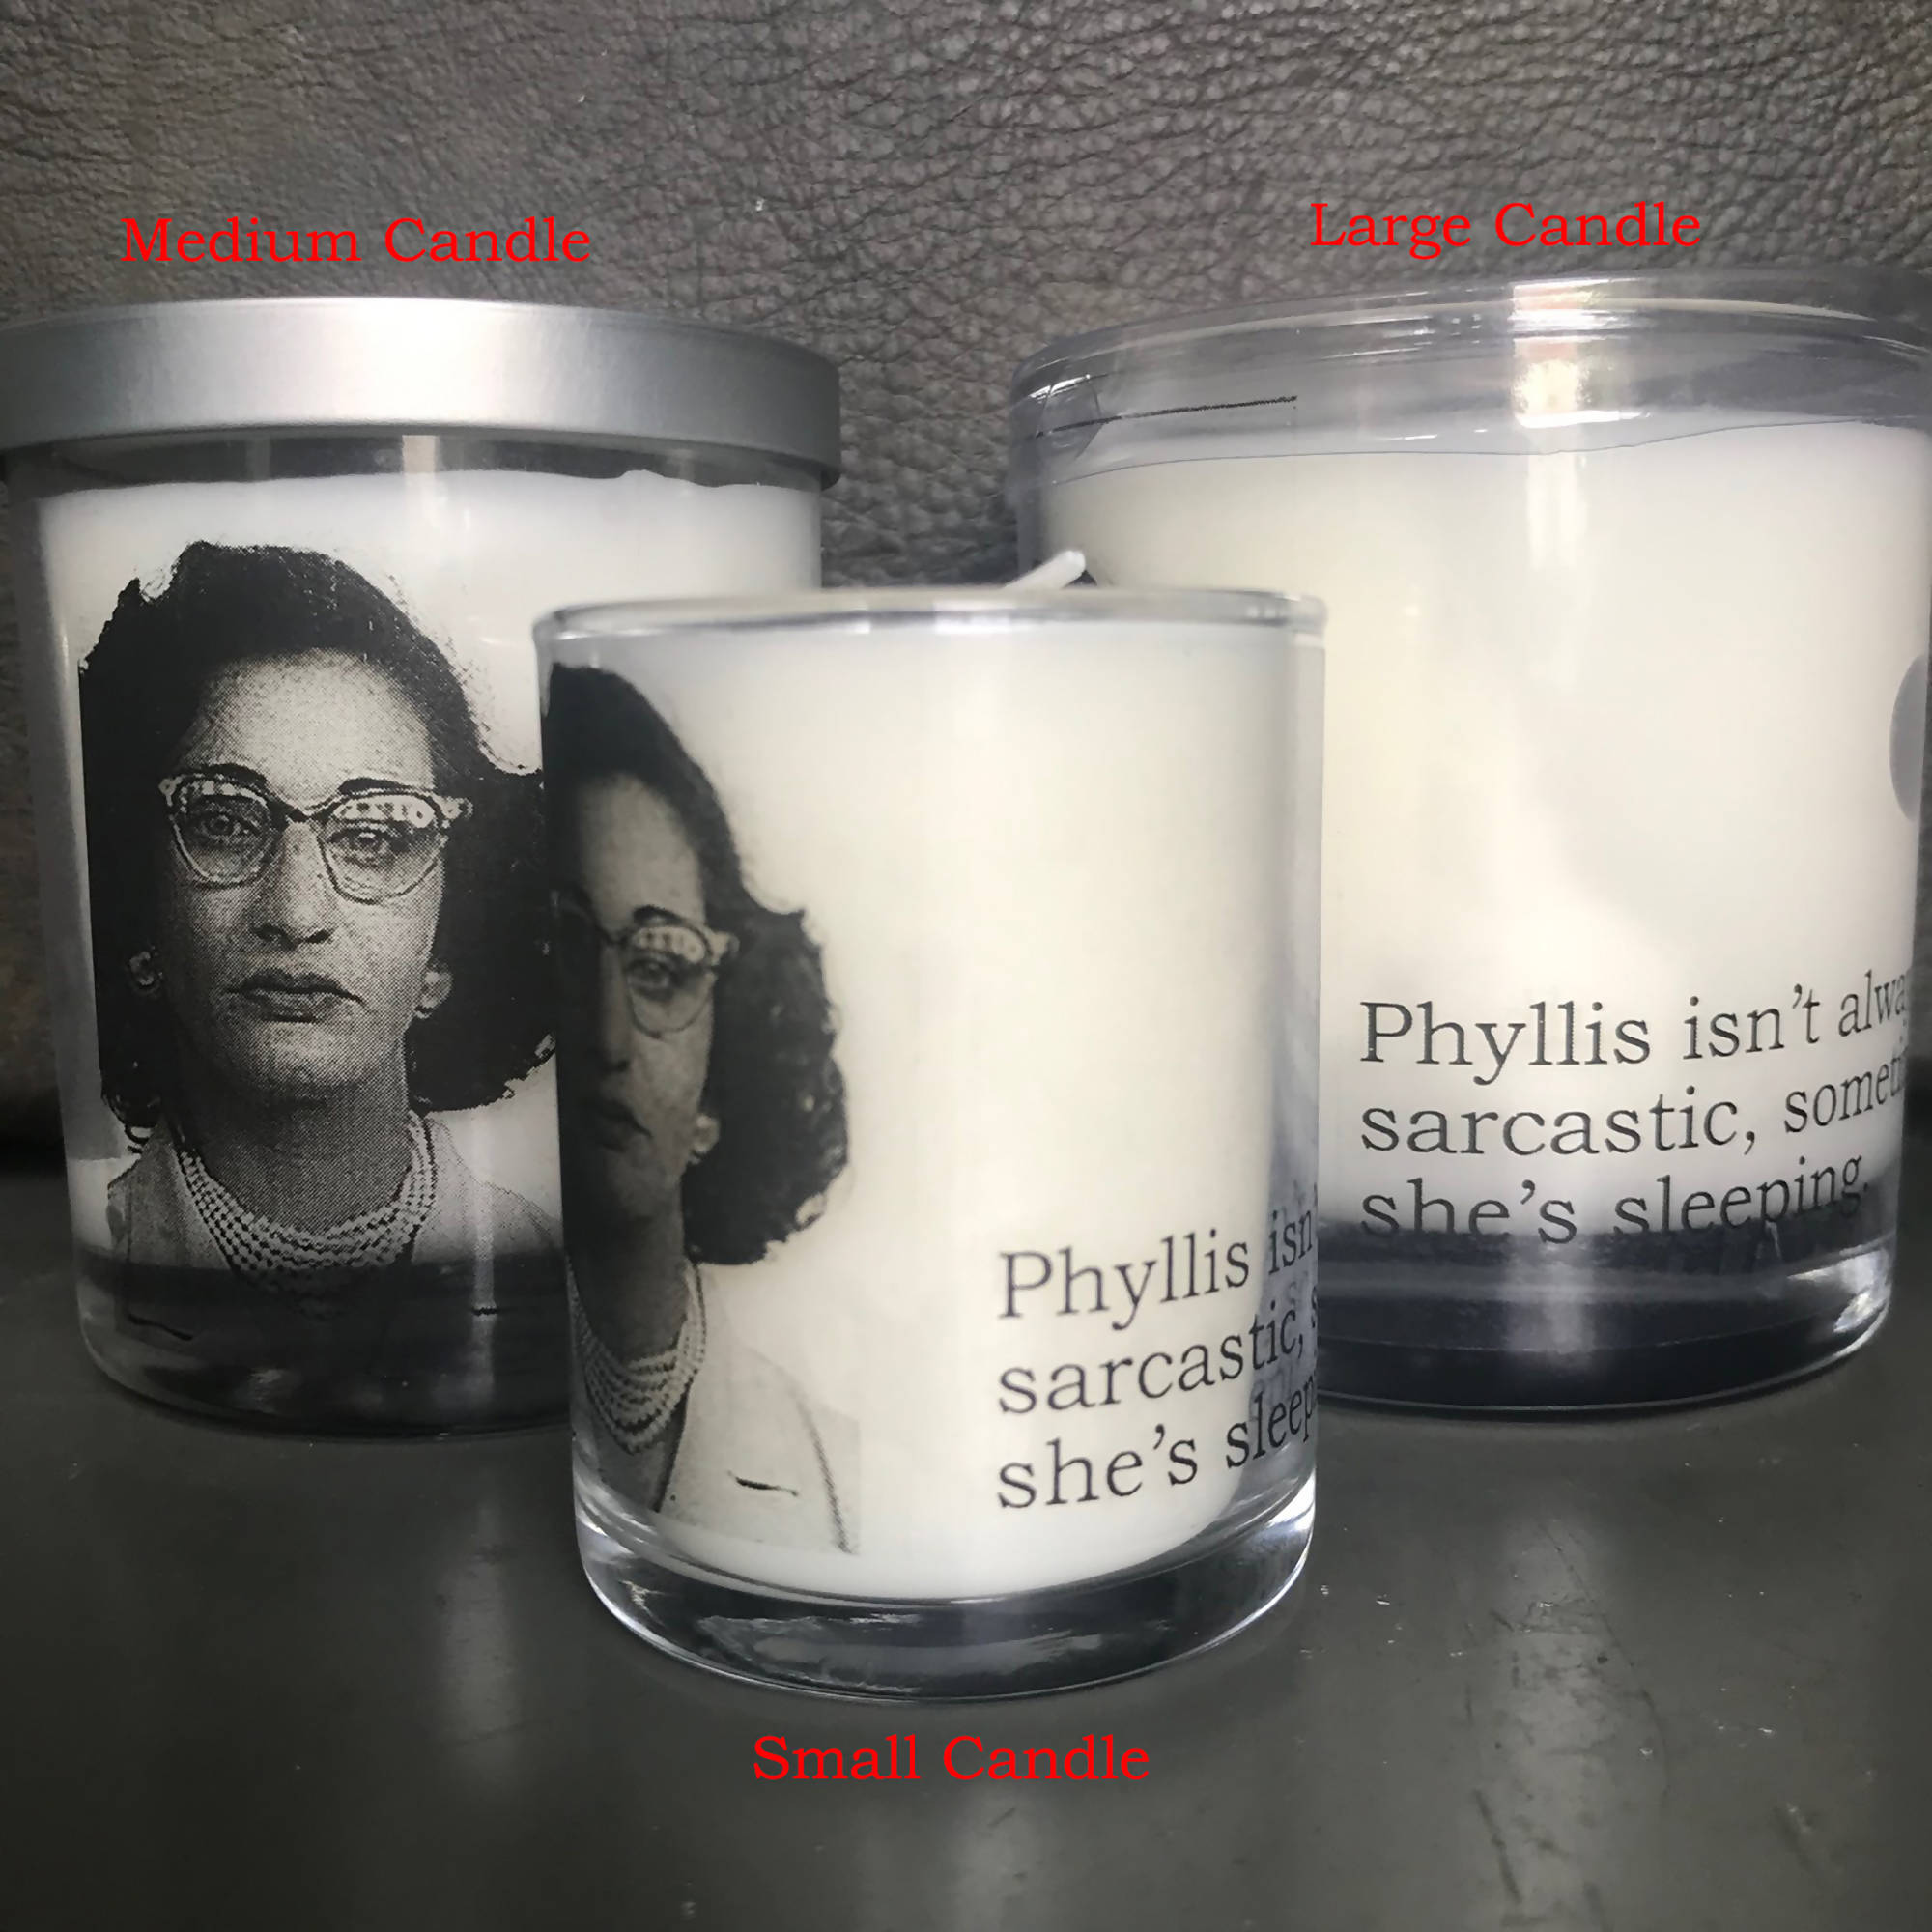 Big House Candles, Phyllis isn't always sarastic…